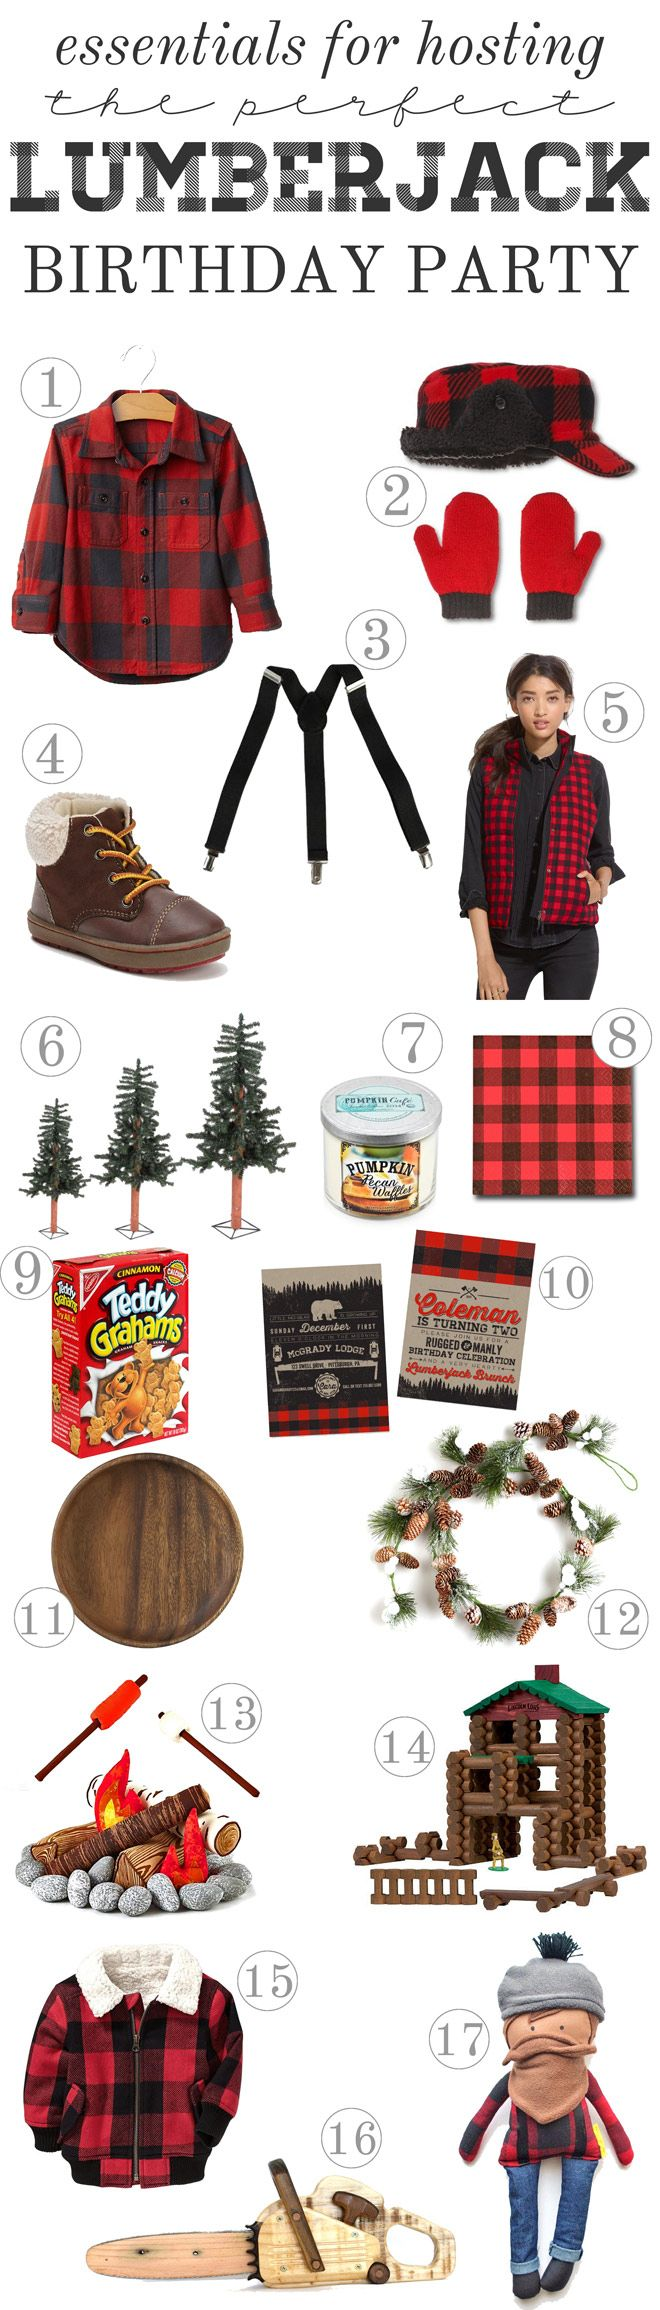 Host a Rugged and Manly Lumberjack Party | TONS OF IDEAS!